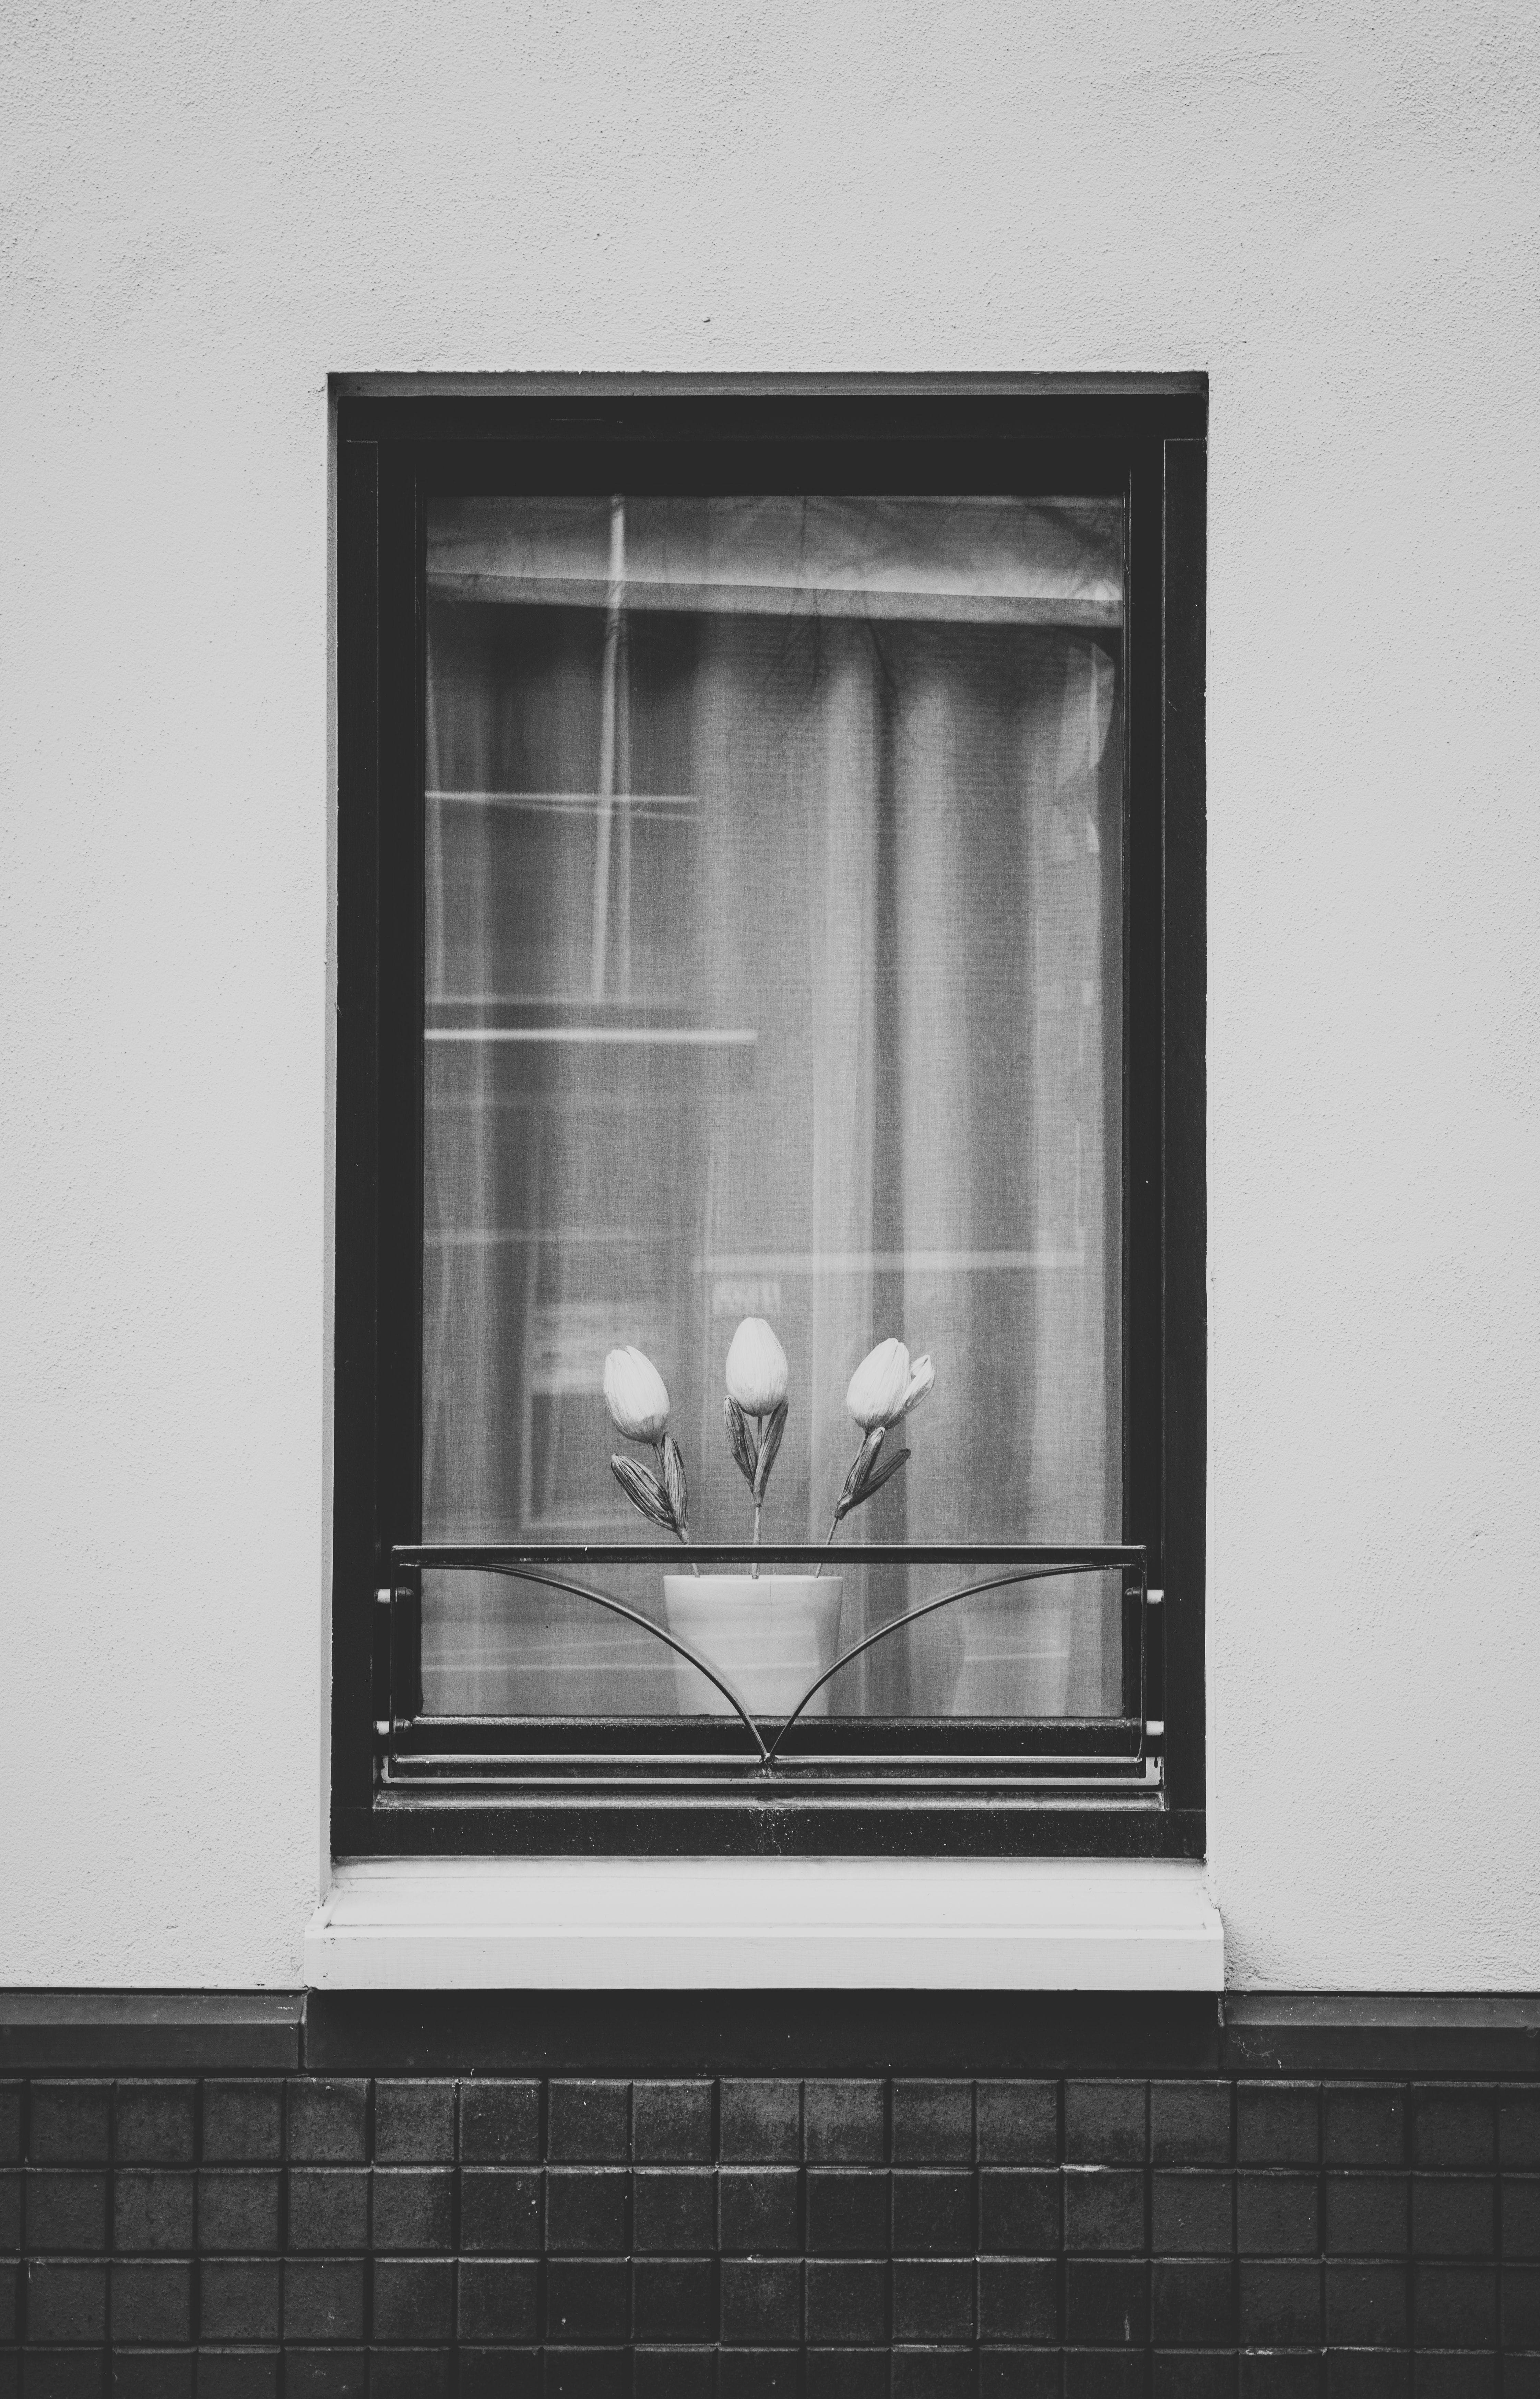 grayscale photography of black window frame